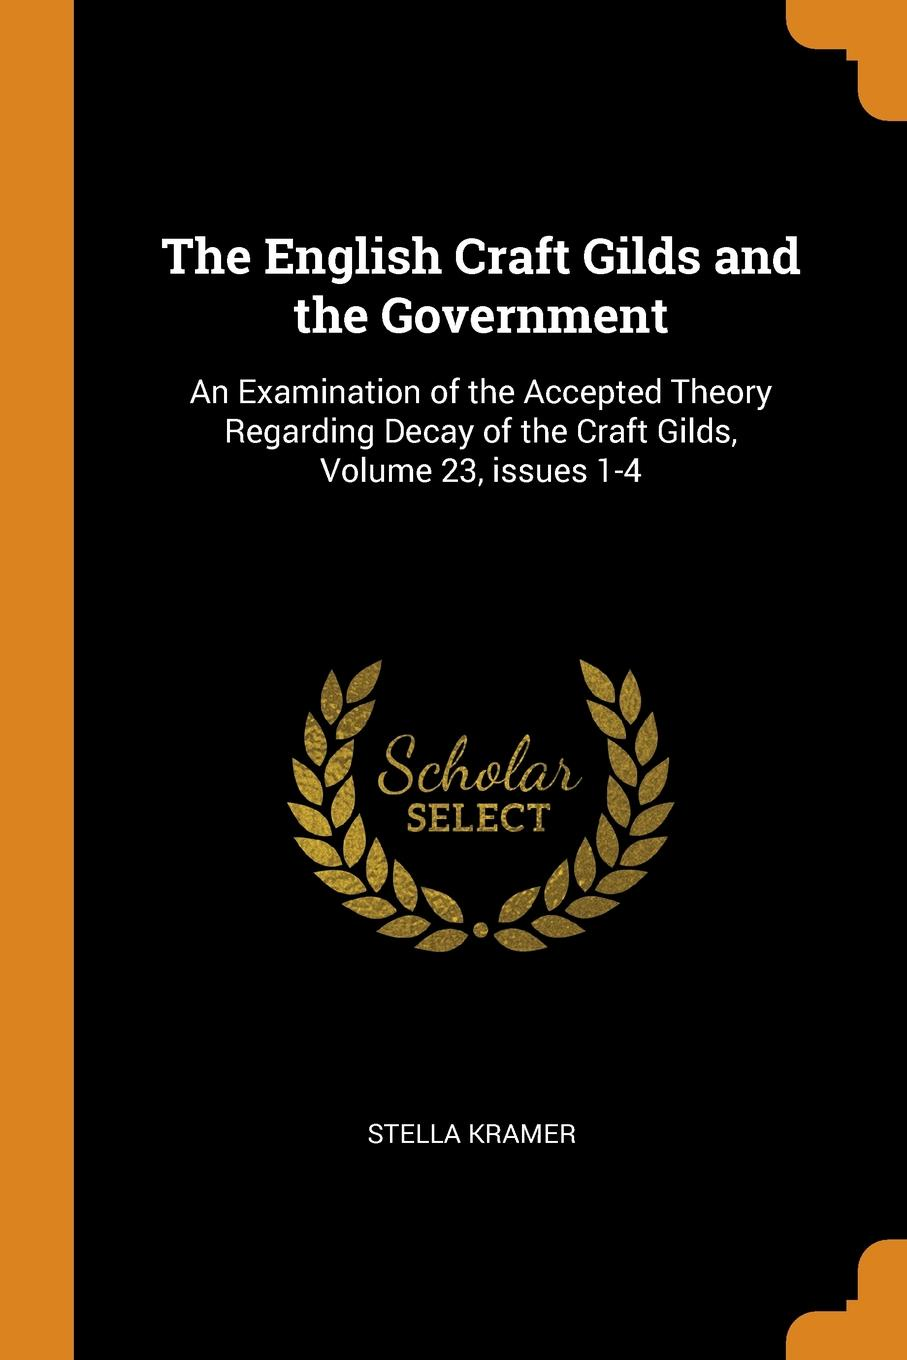 The English Craft Gilds and the Government. An Examination of the Accepted Theory Regarding Decay of the Craft Gilds, Volume 23, issues 1-4